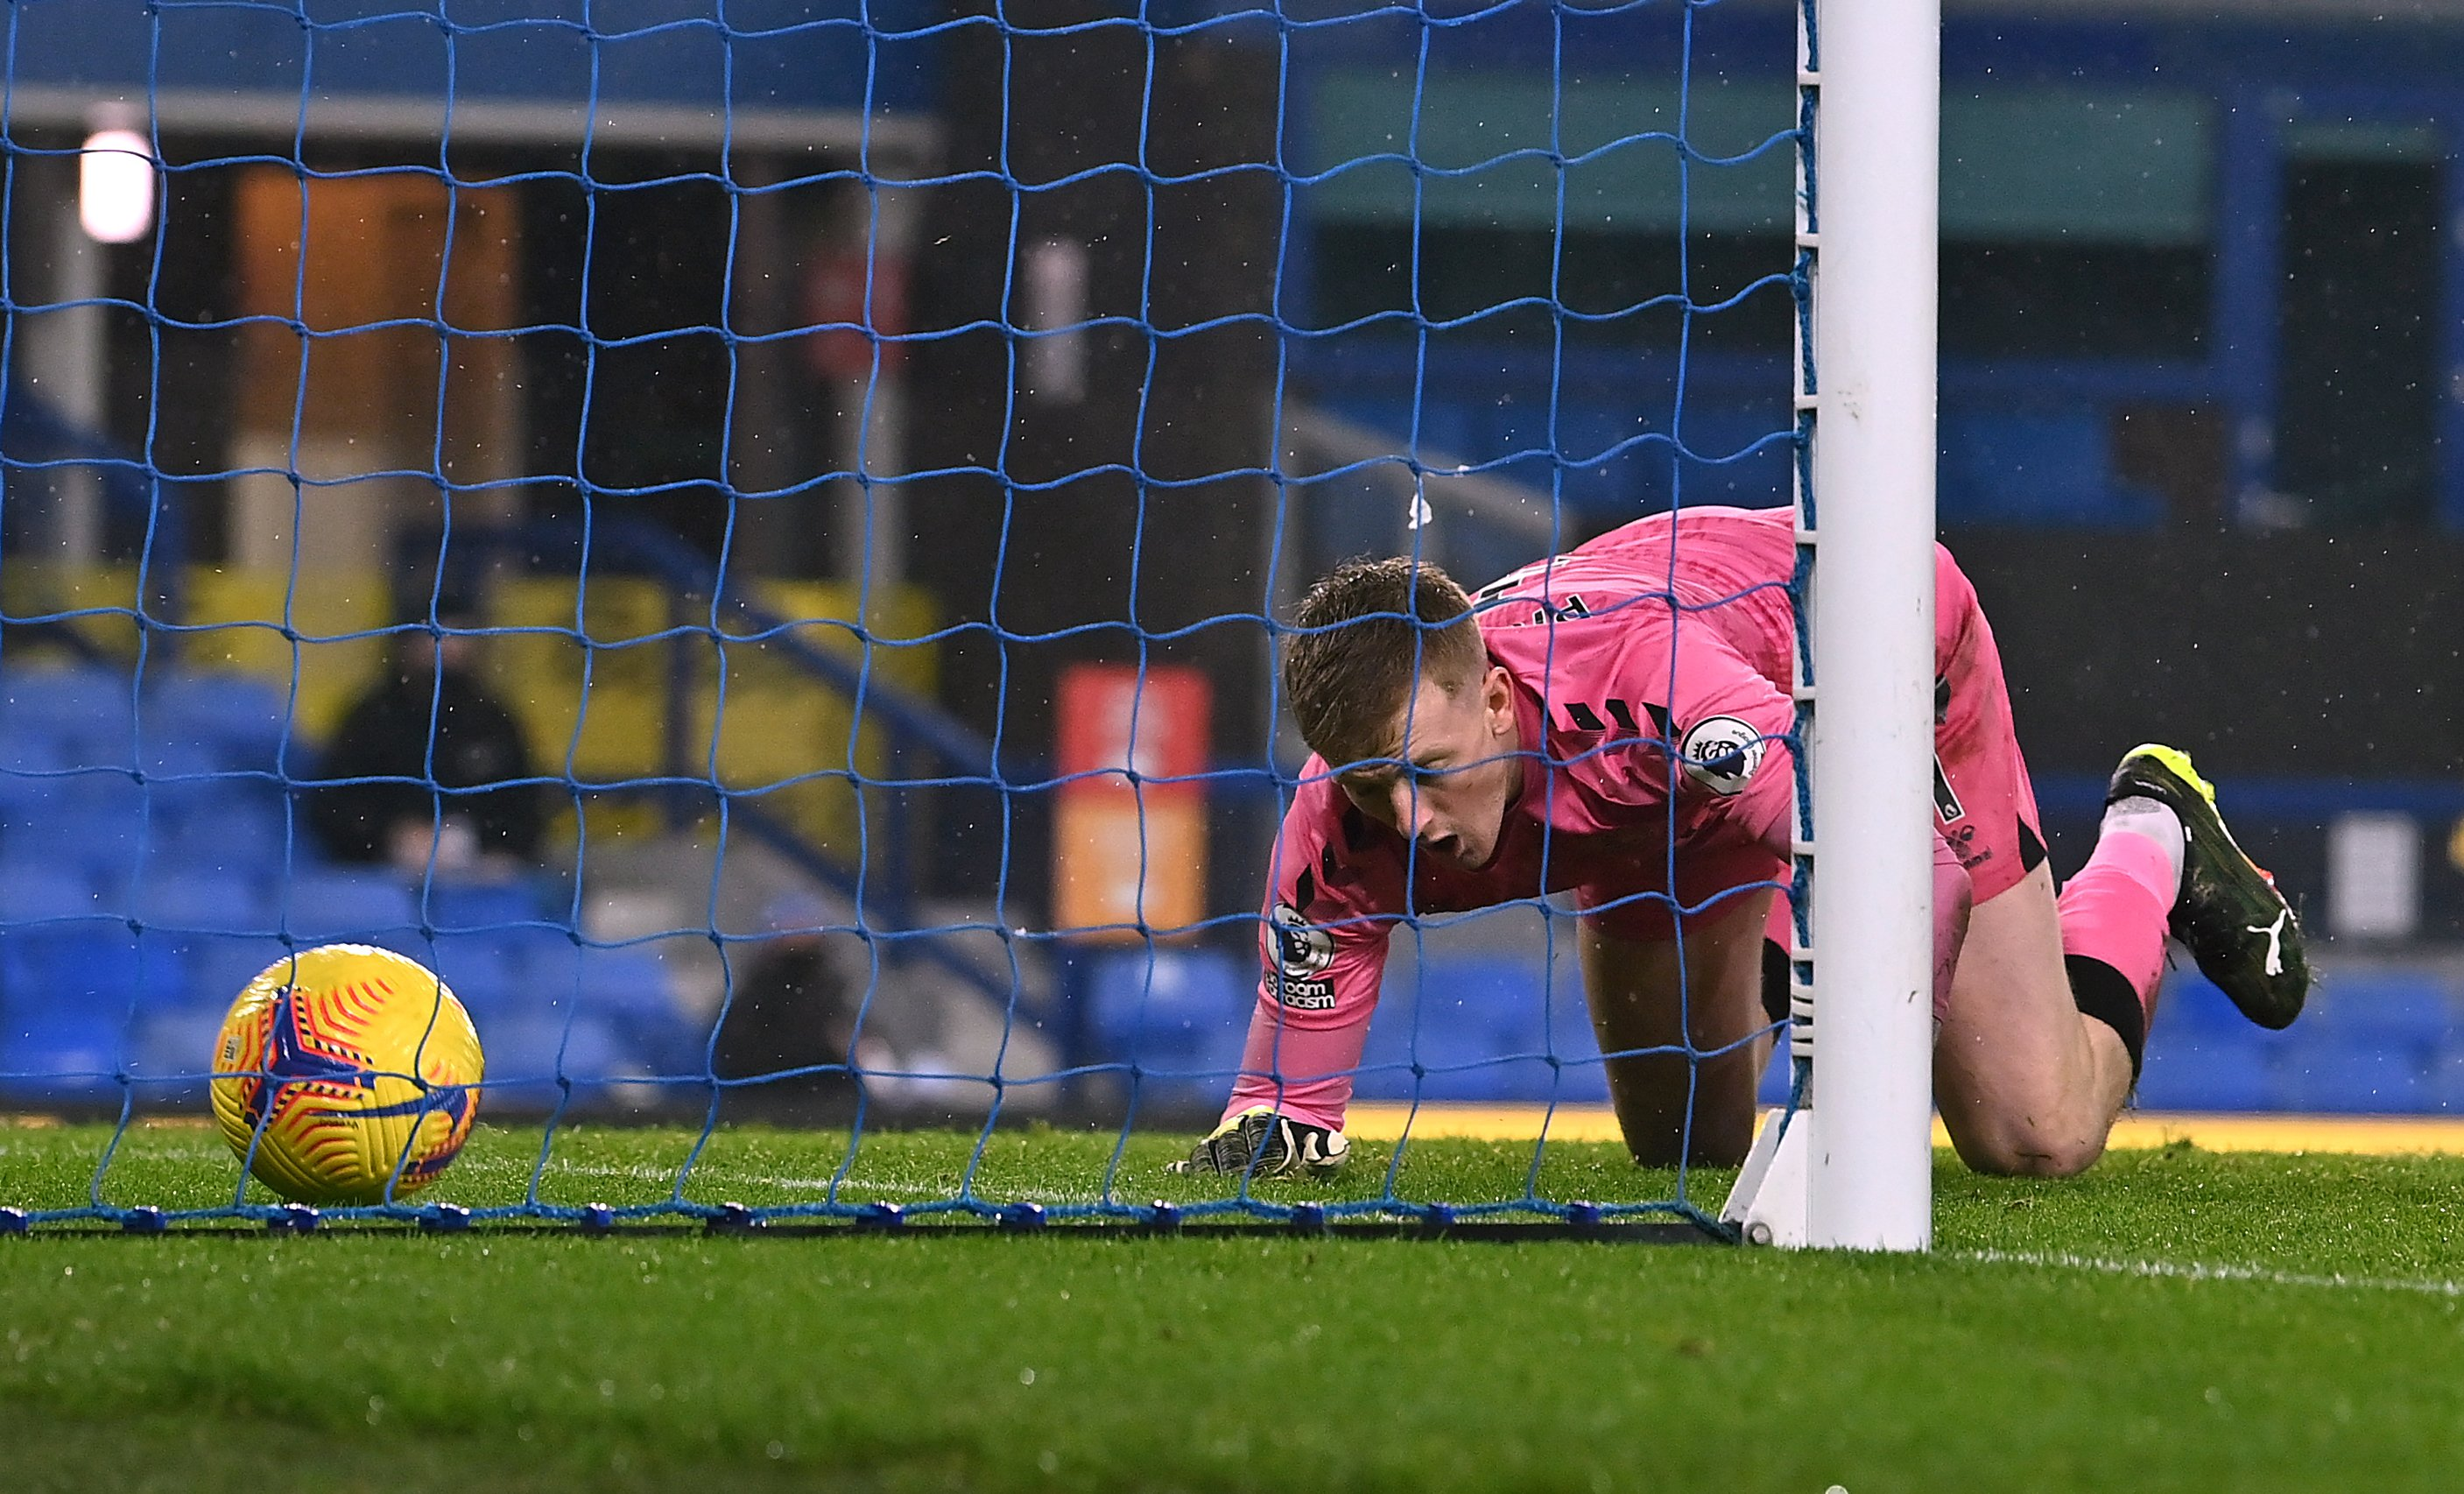 Carlo Ancelotti refuses to blame Jordan Pickford after mistake hands Foxes point